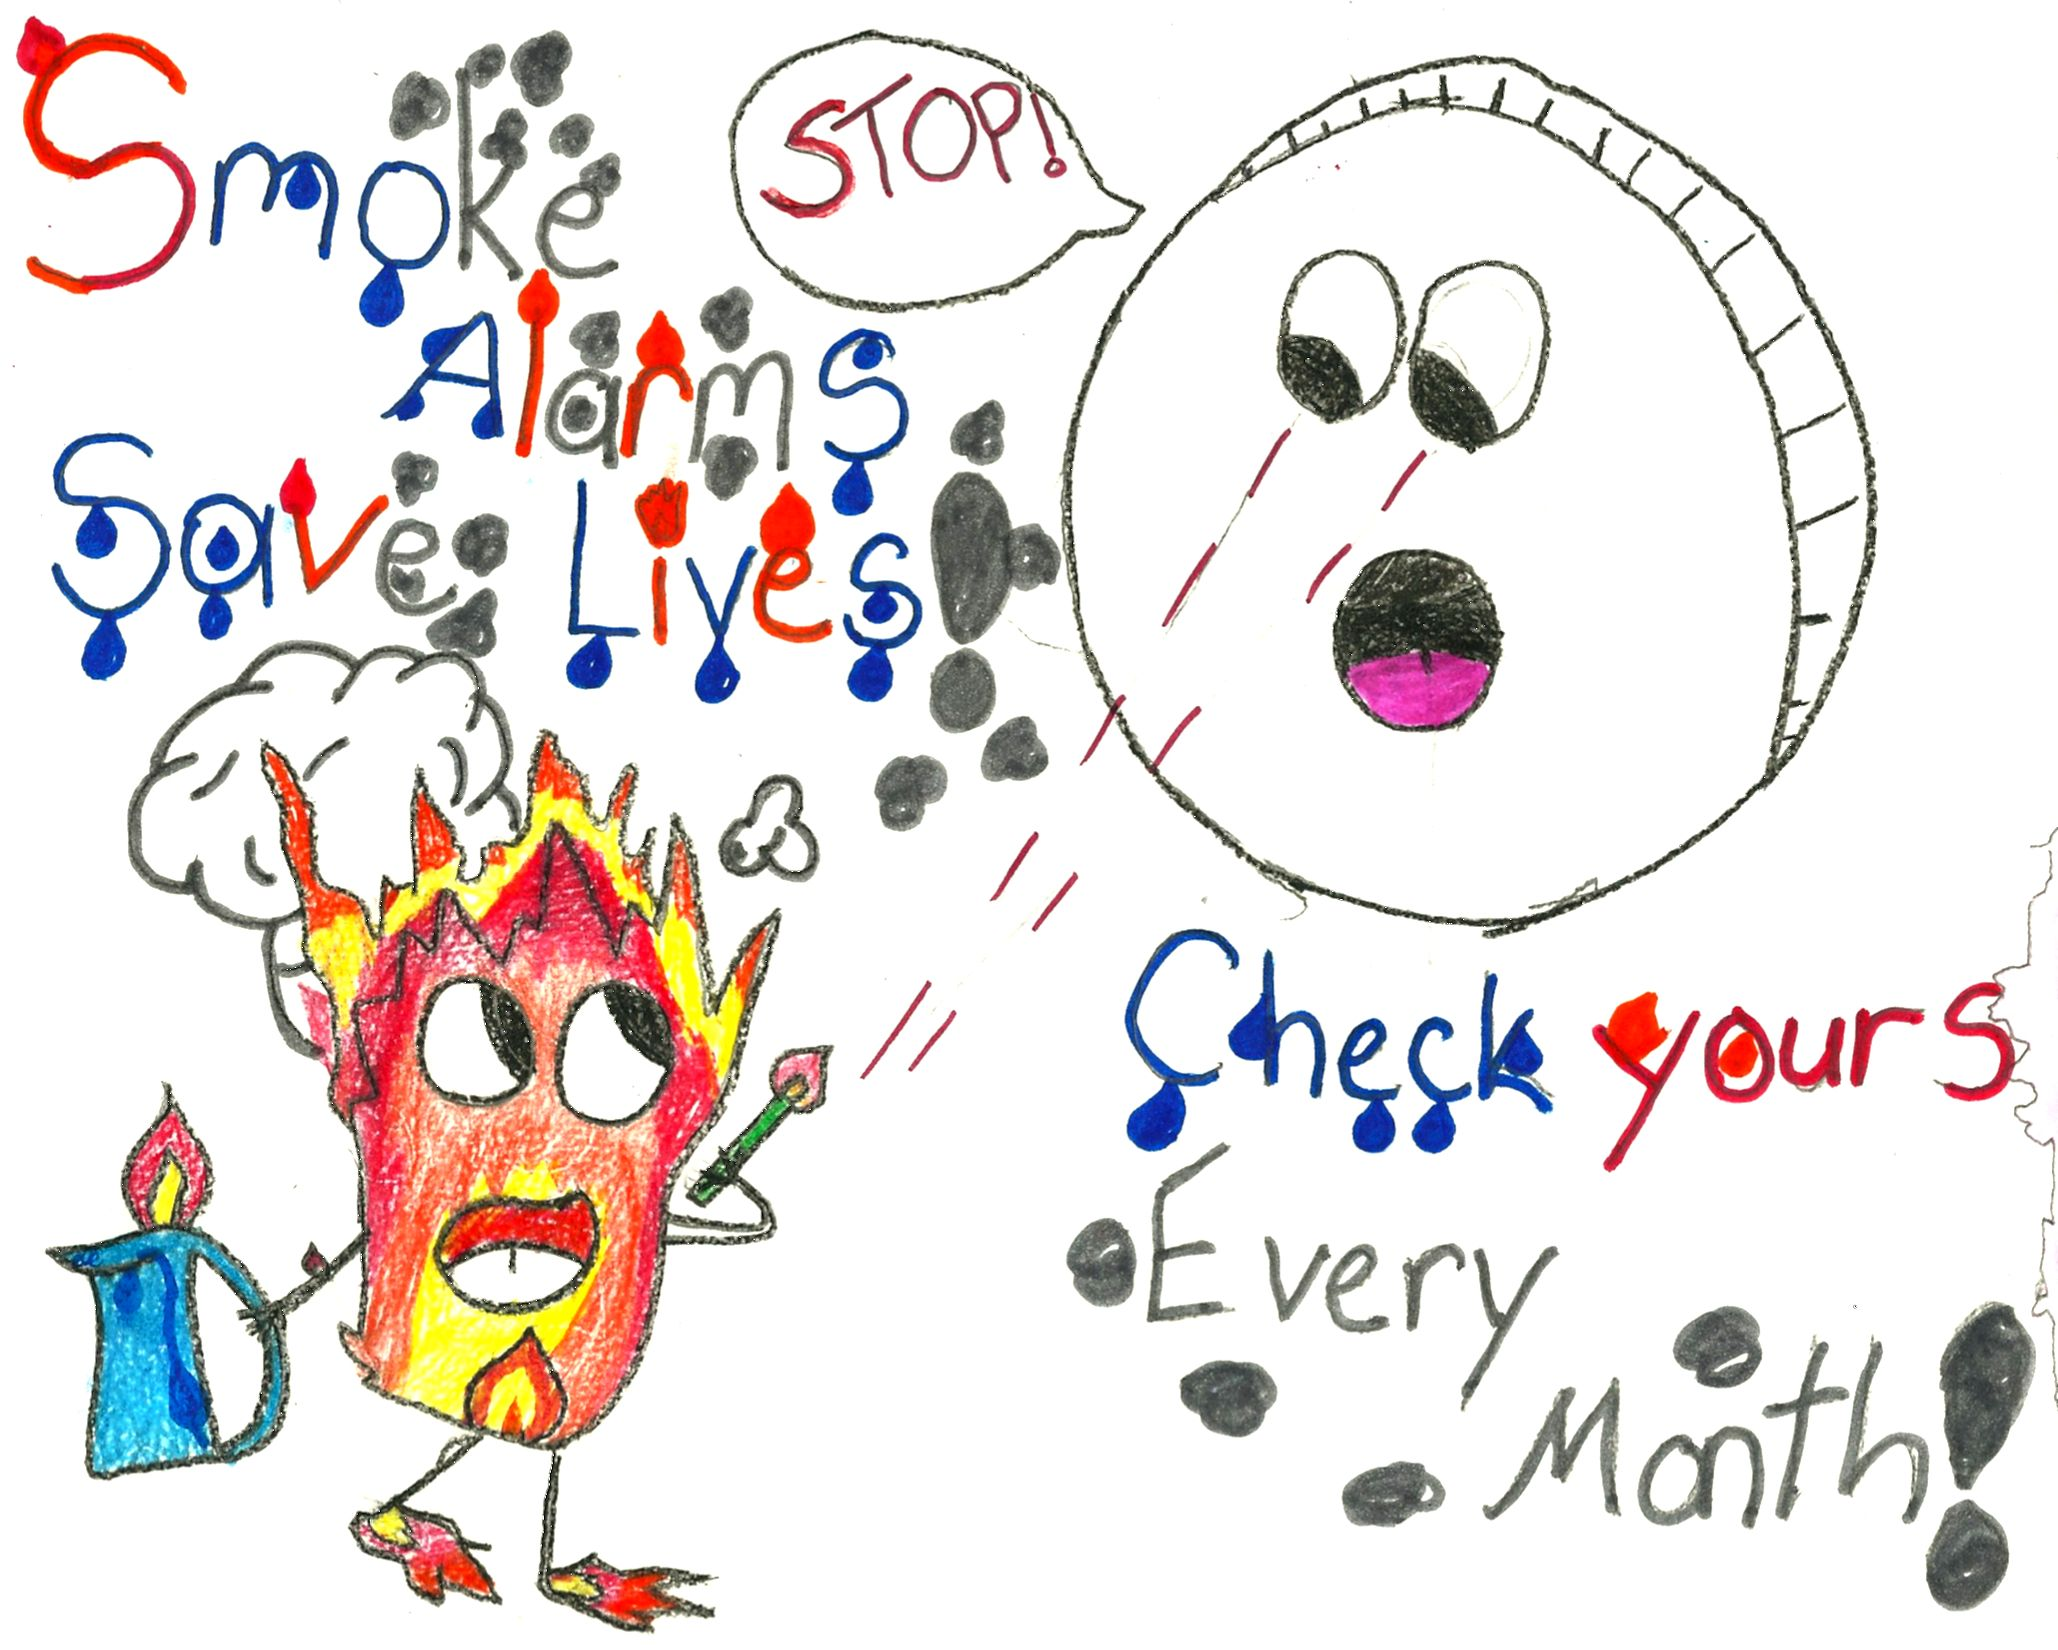 Fire Safety Poster Contest Fire safety poster, Fire